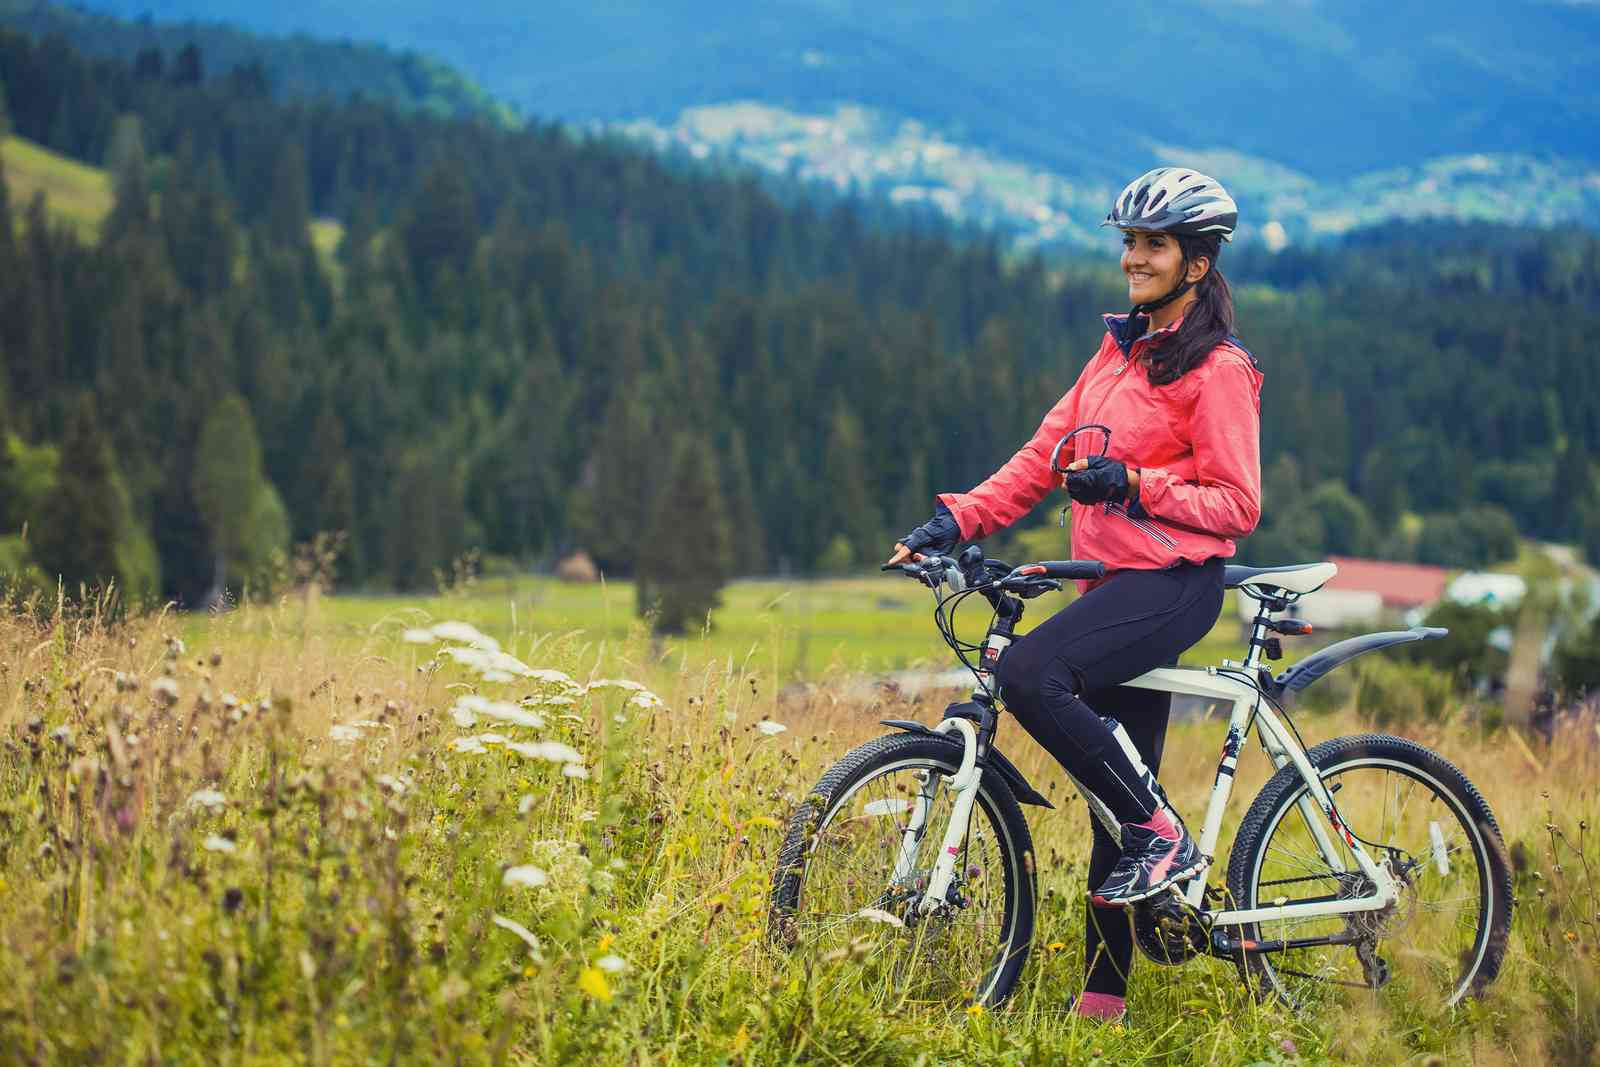 A female cyclist in the mountains (Shutterstock)